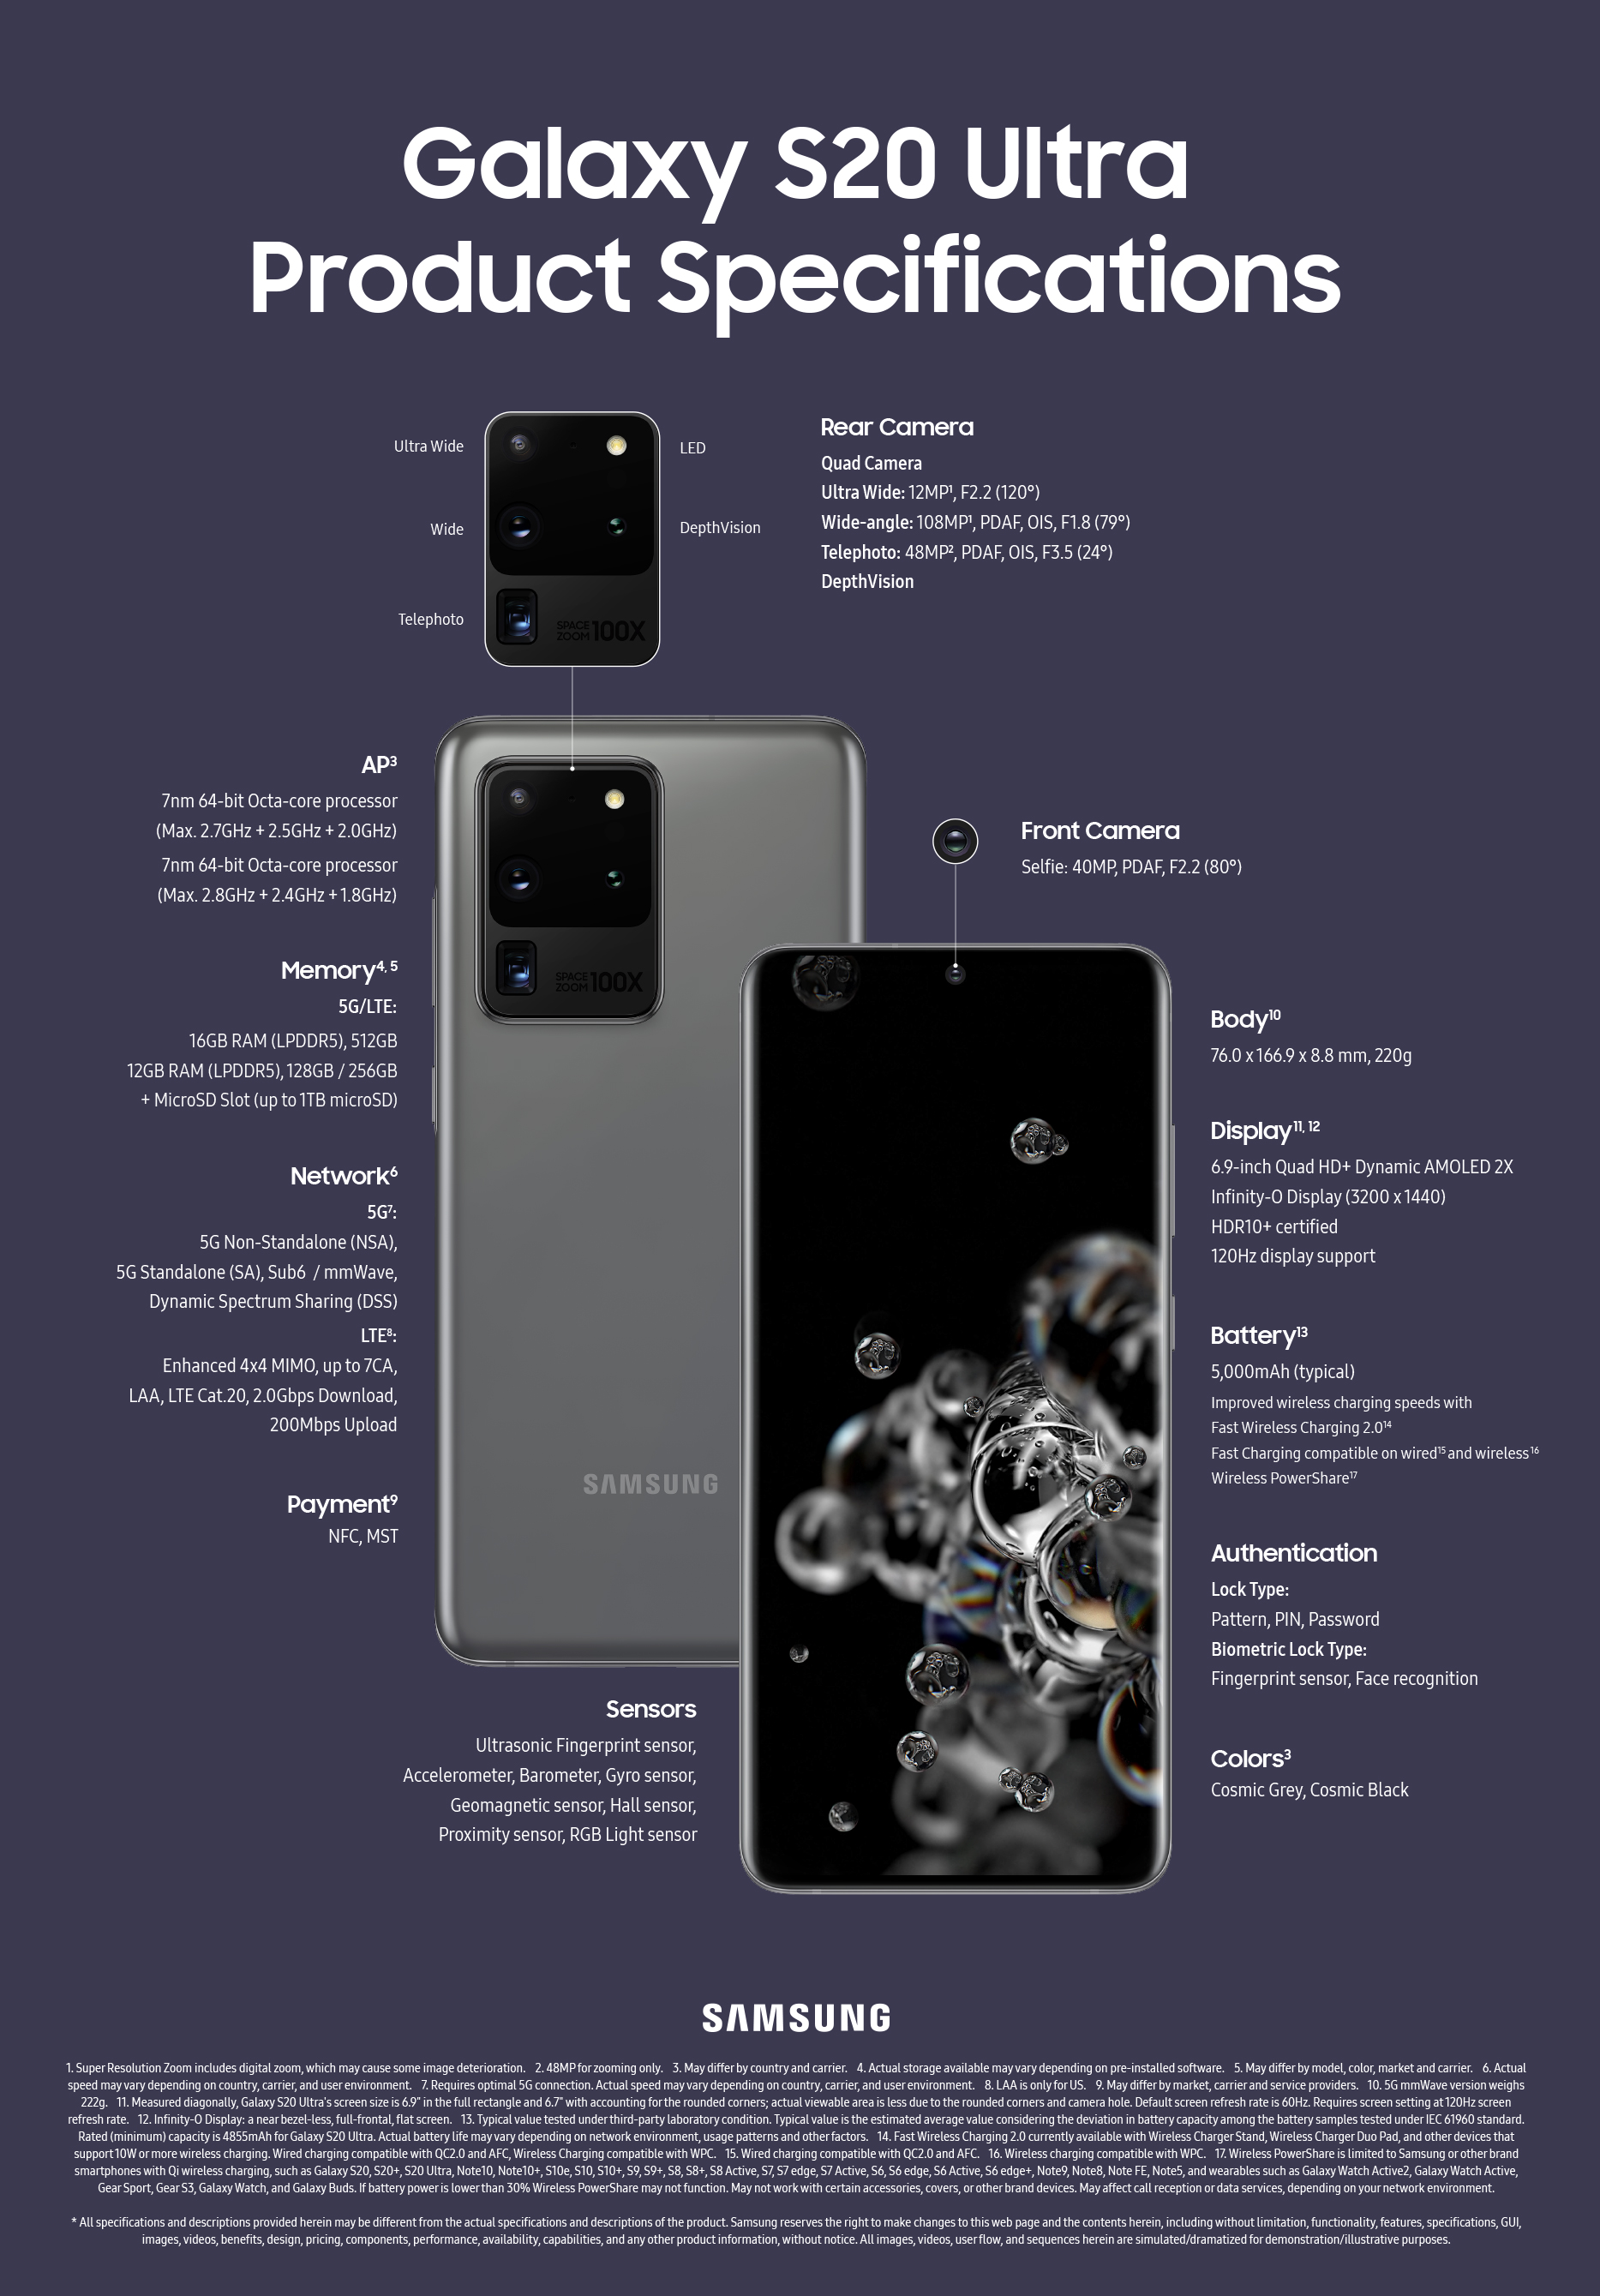 Samsung Galaxy S20 Ultra 5G specifications